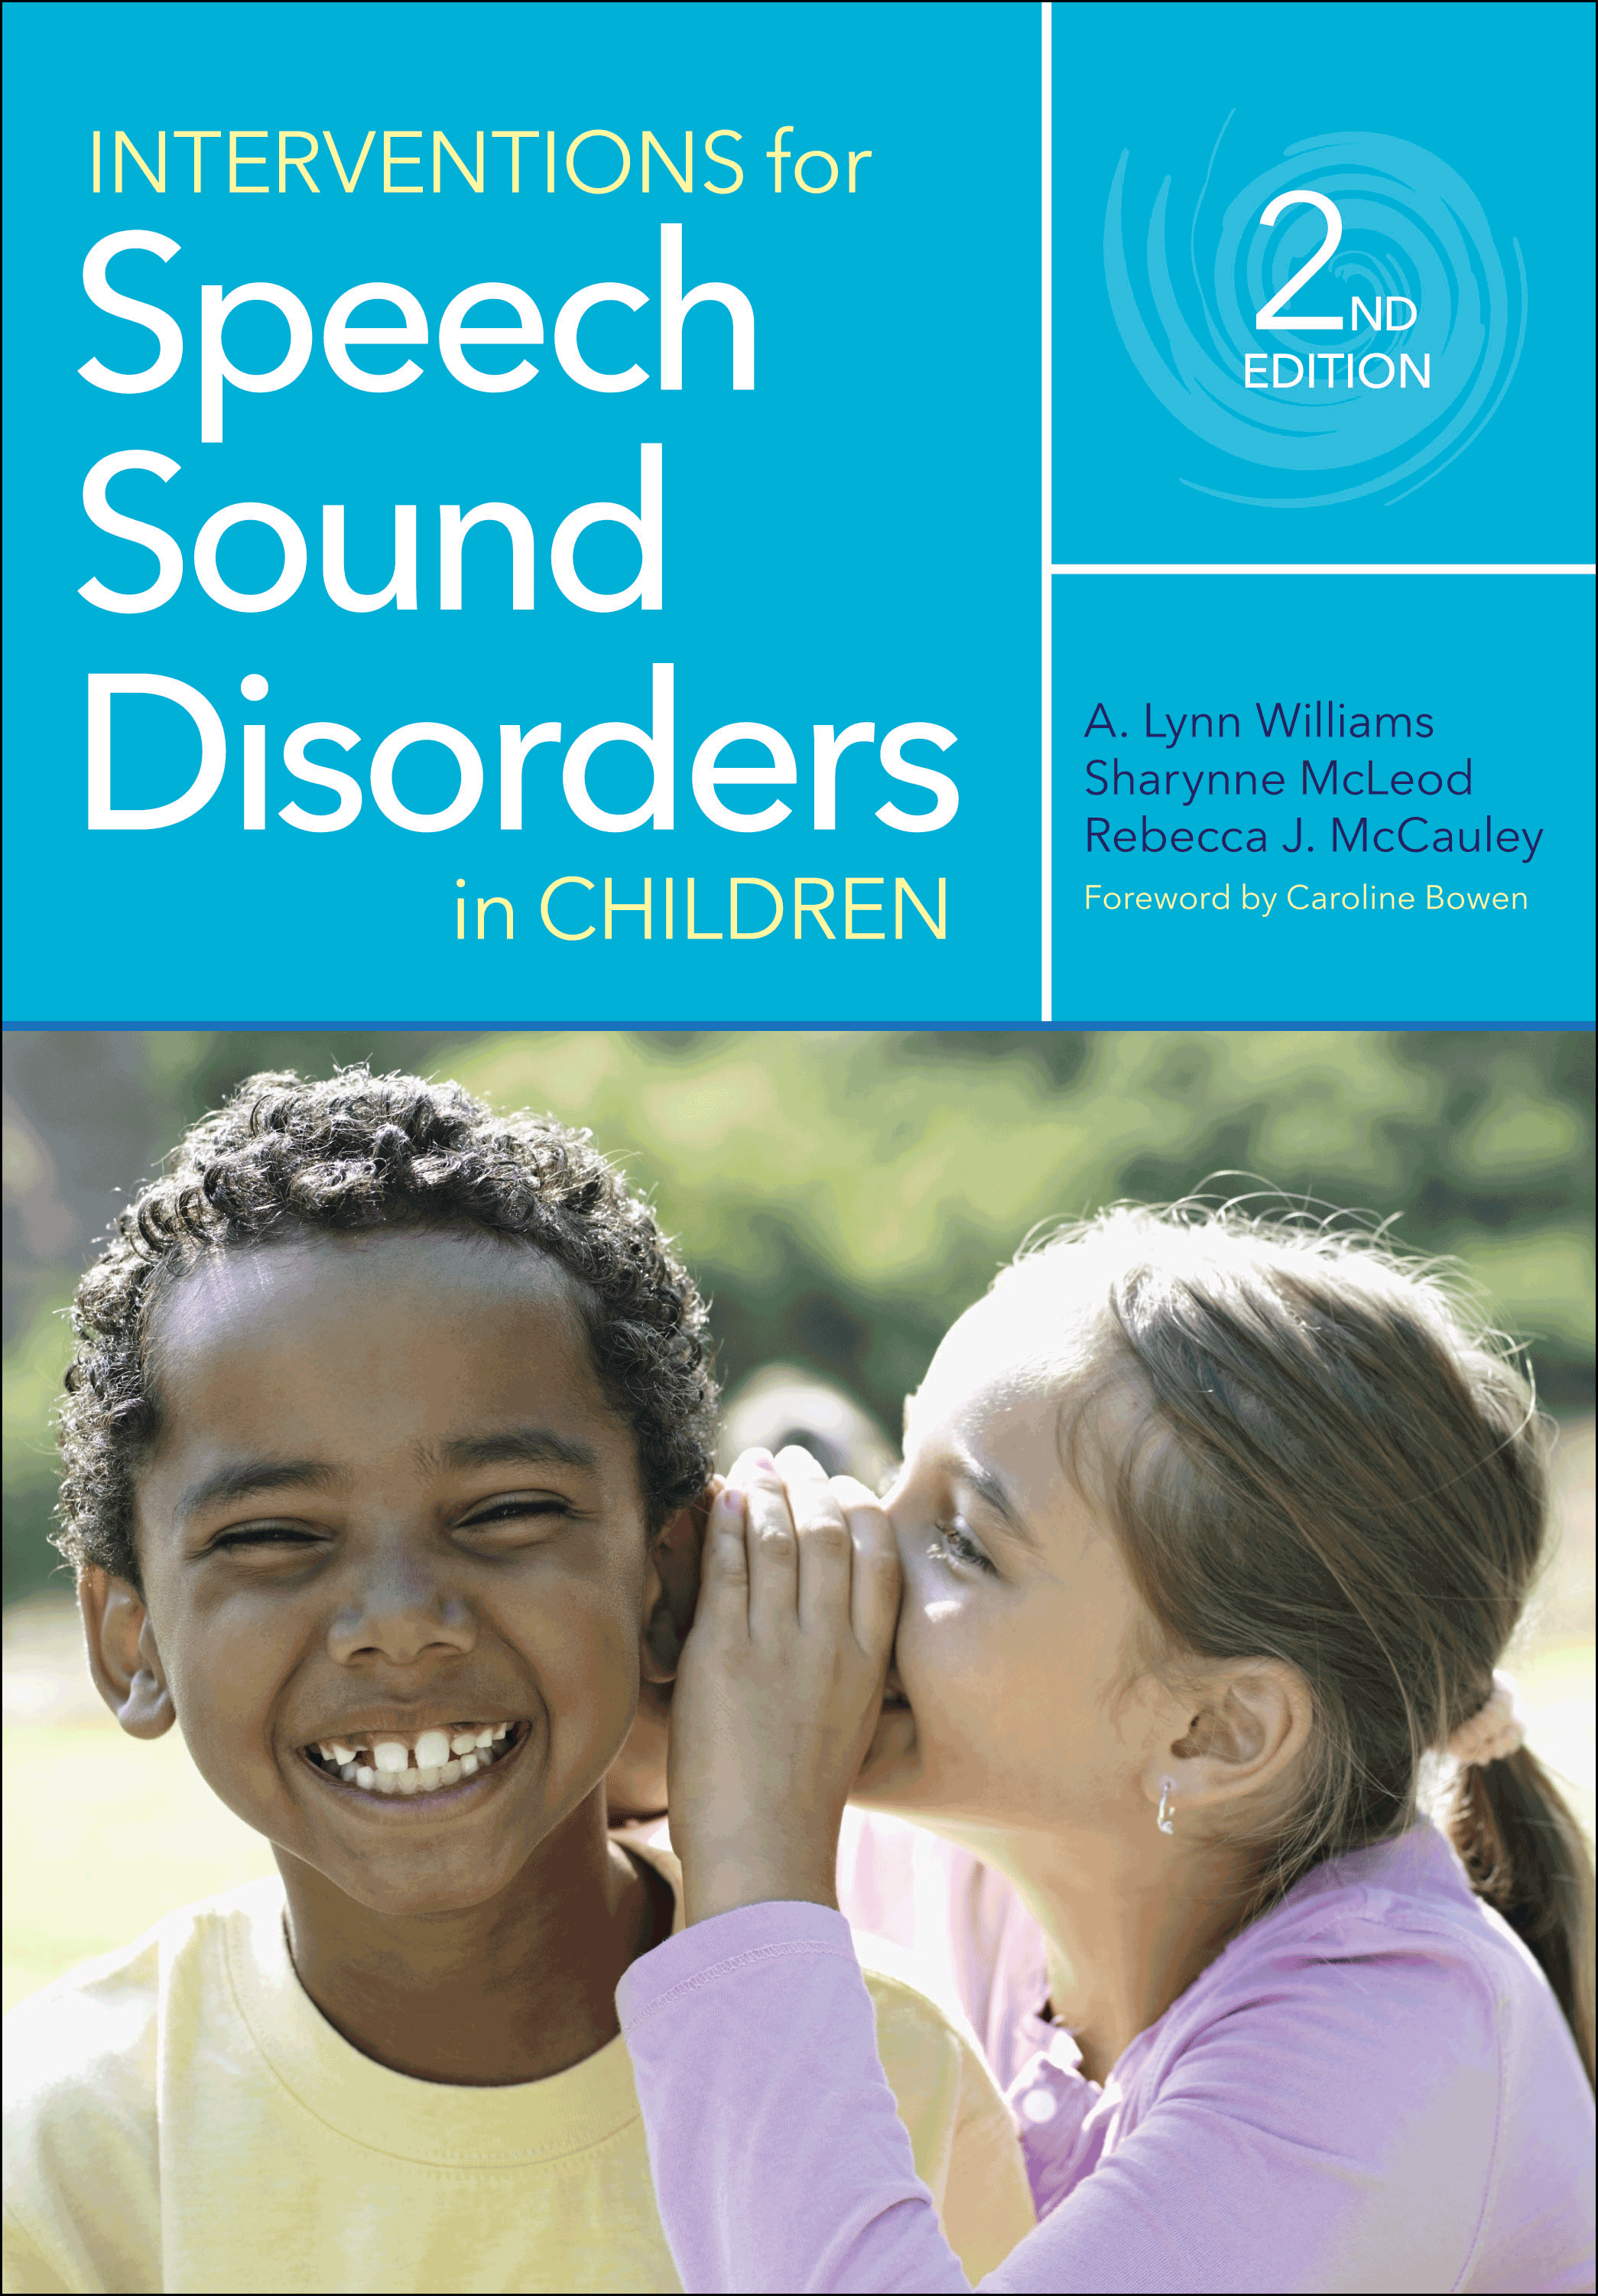 Interventions for Speech Sound Disorders in Children, Second Edition